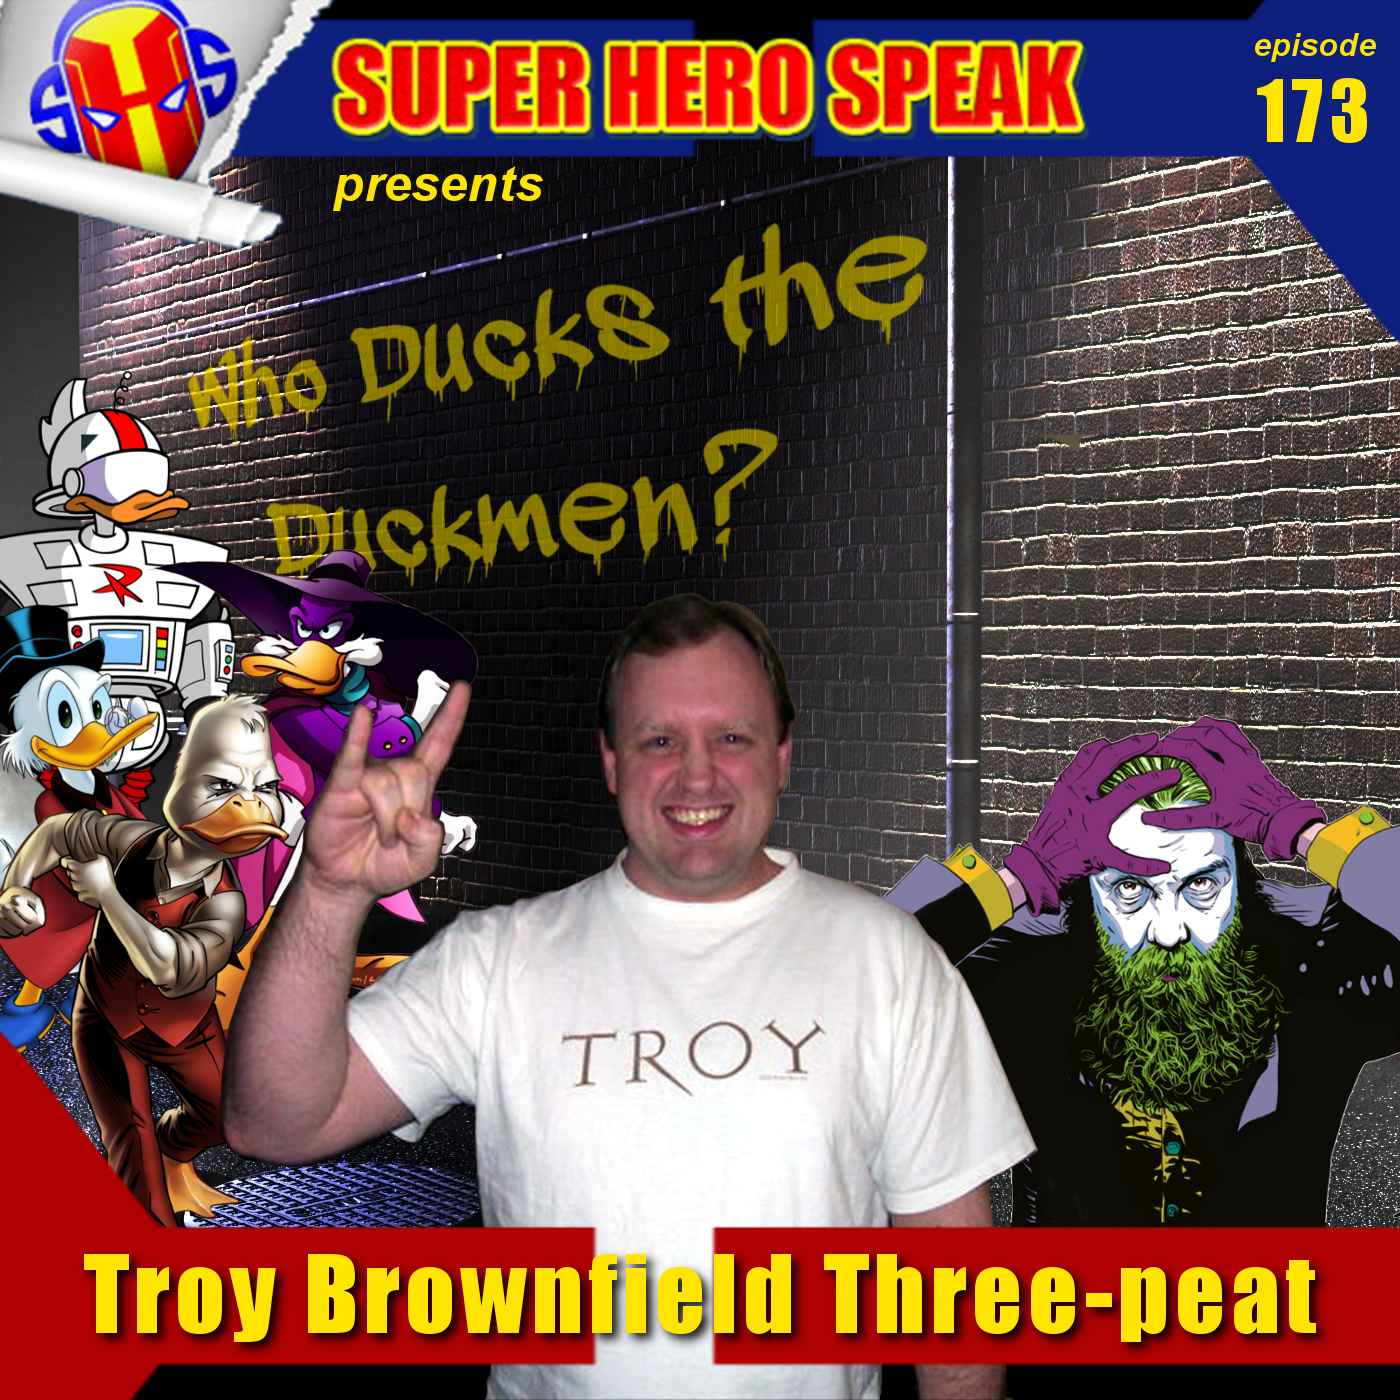 #173: Troy Brownfield Three-peat